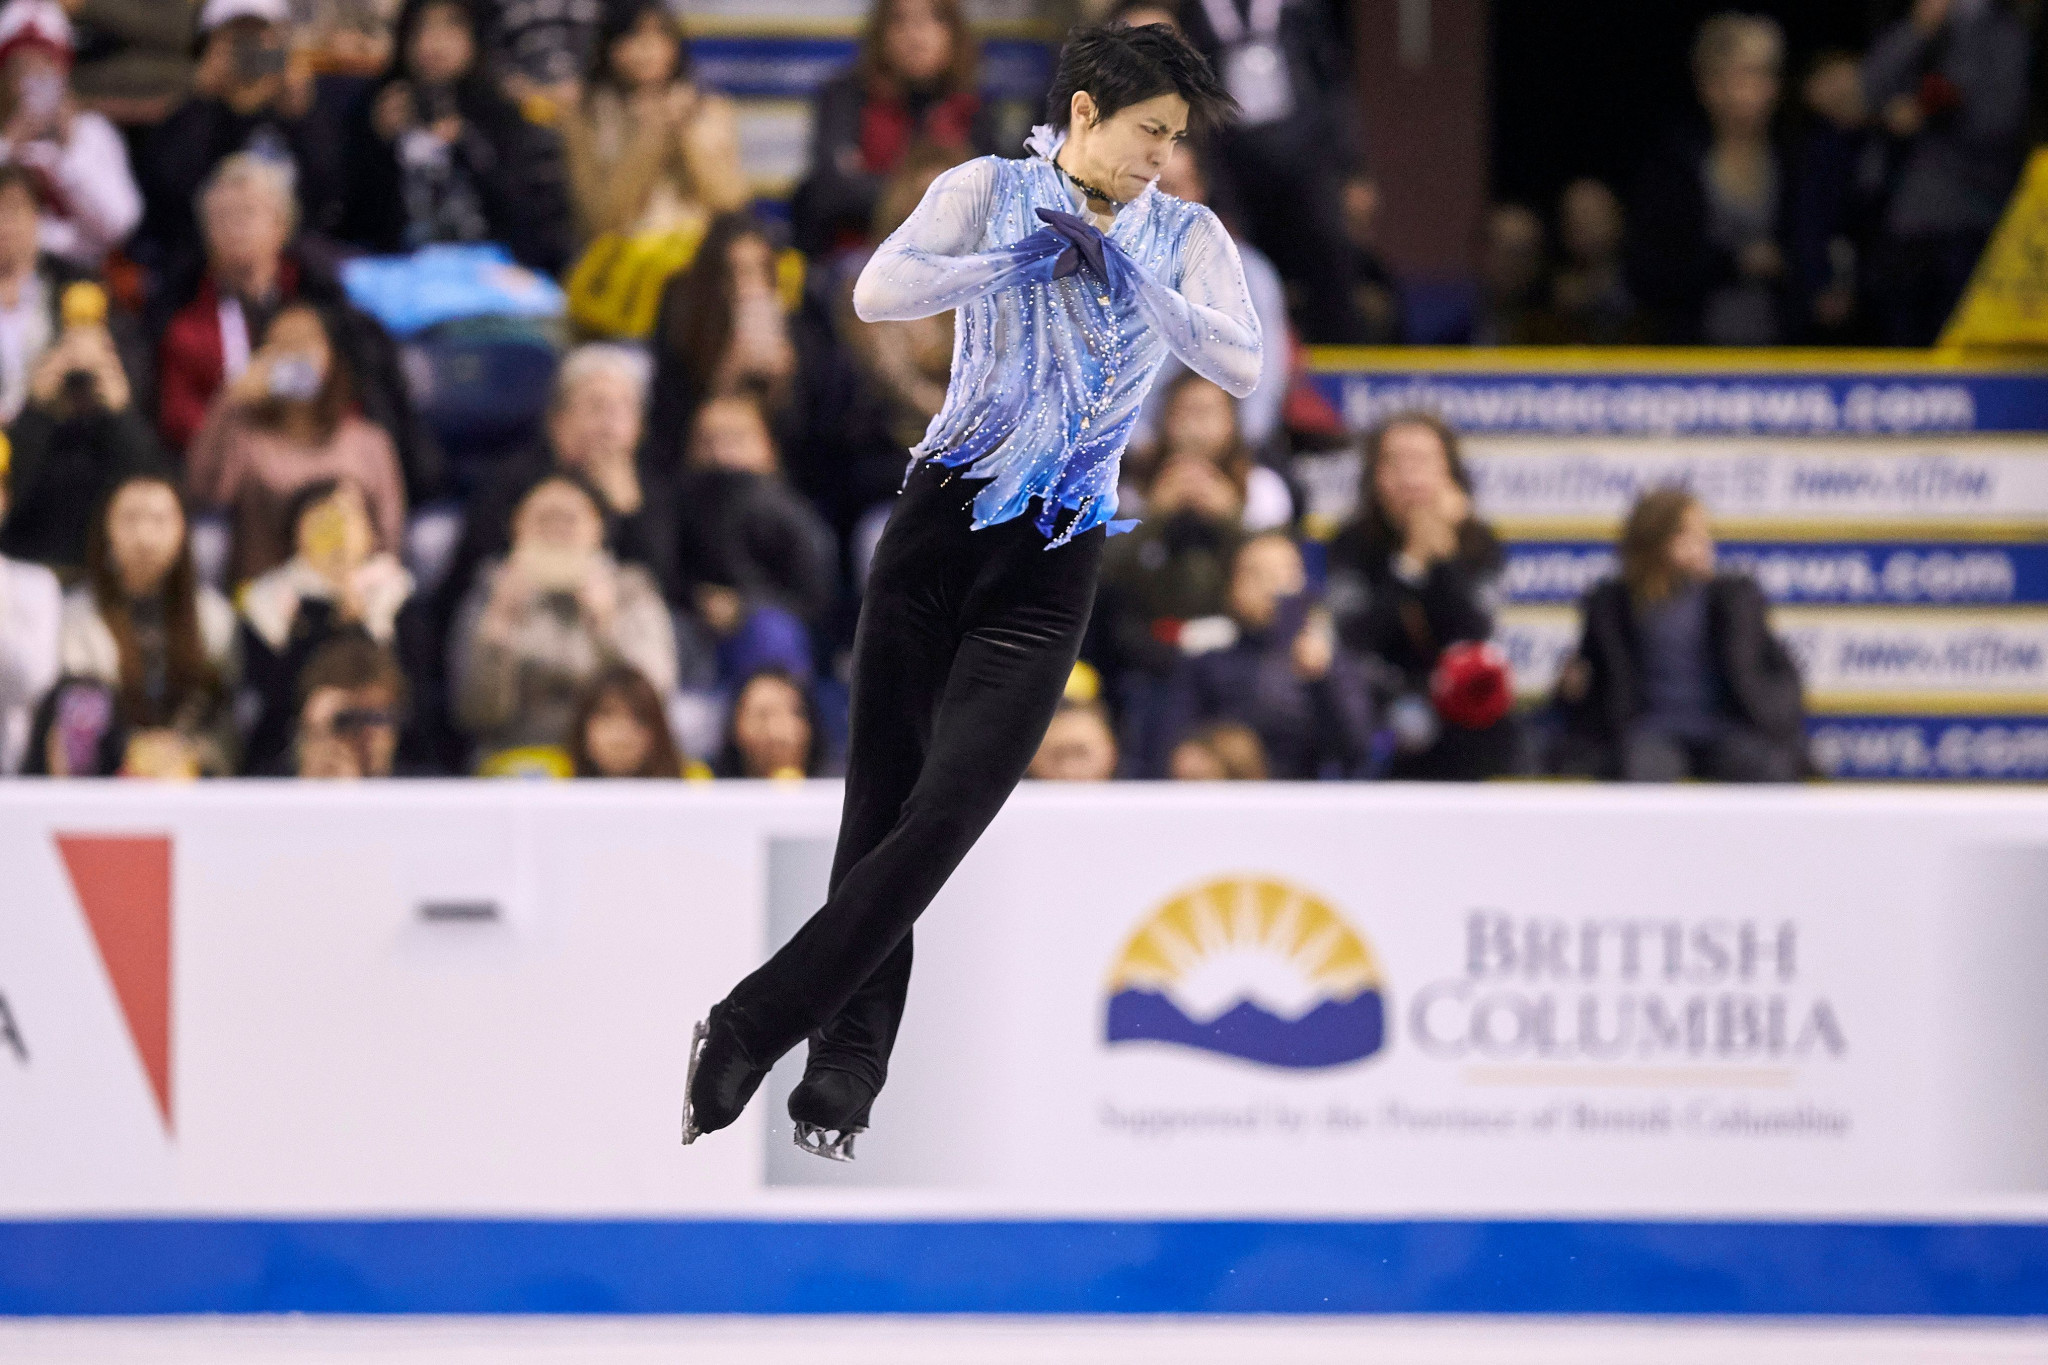 Hanyu tops short programme to take lead at Skate Canada